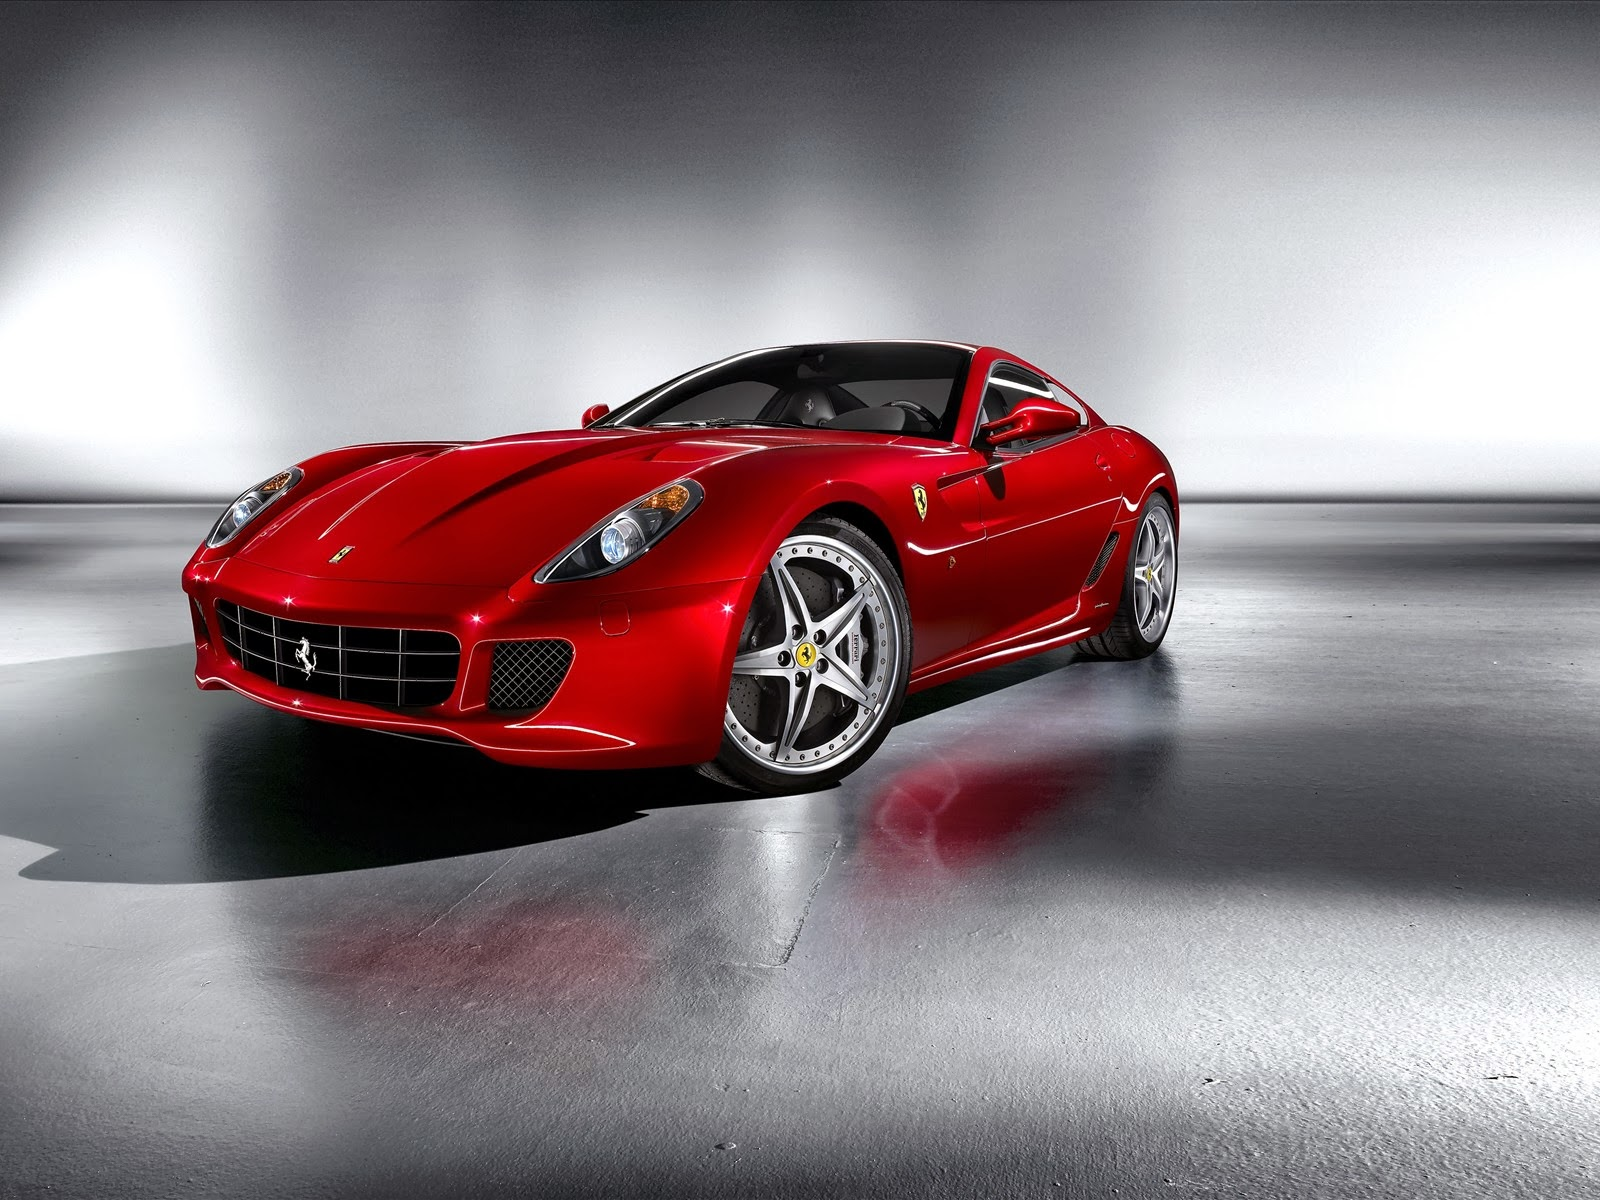 http://www.crazywallpapers.in/2014/03/ferrari-red-car-hd-pictures.html